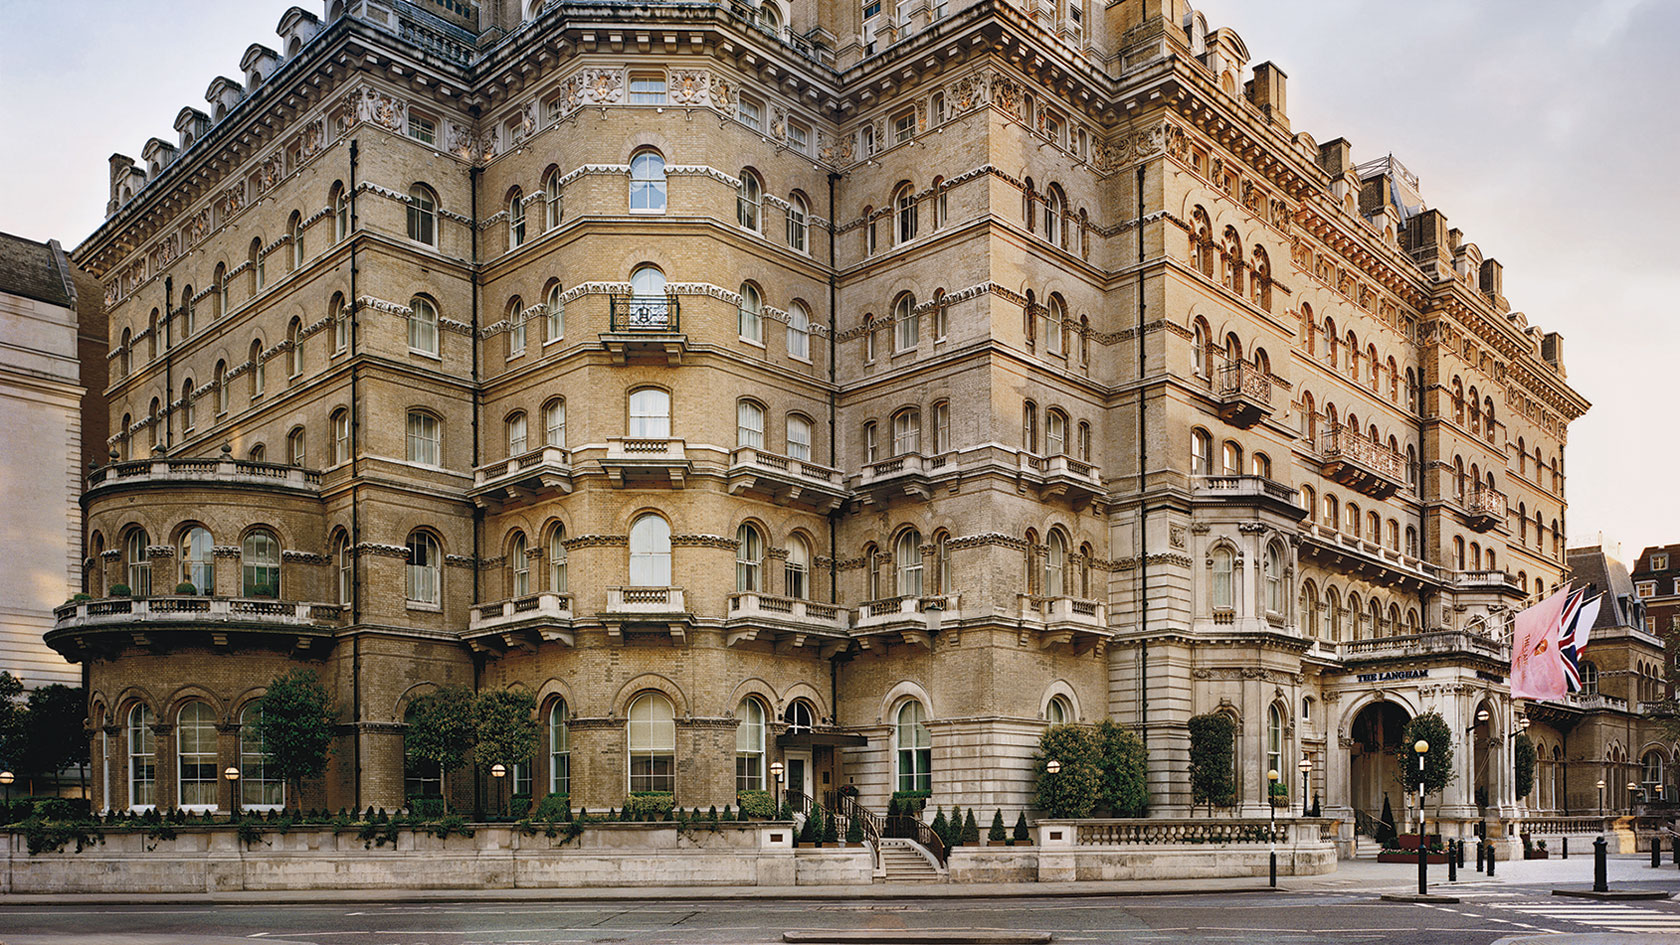 The Langham Hotel in London